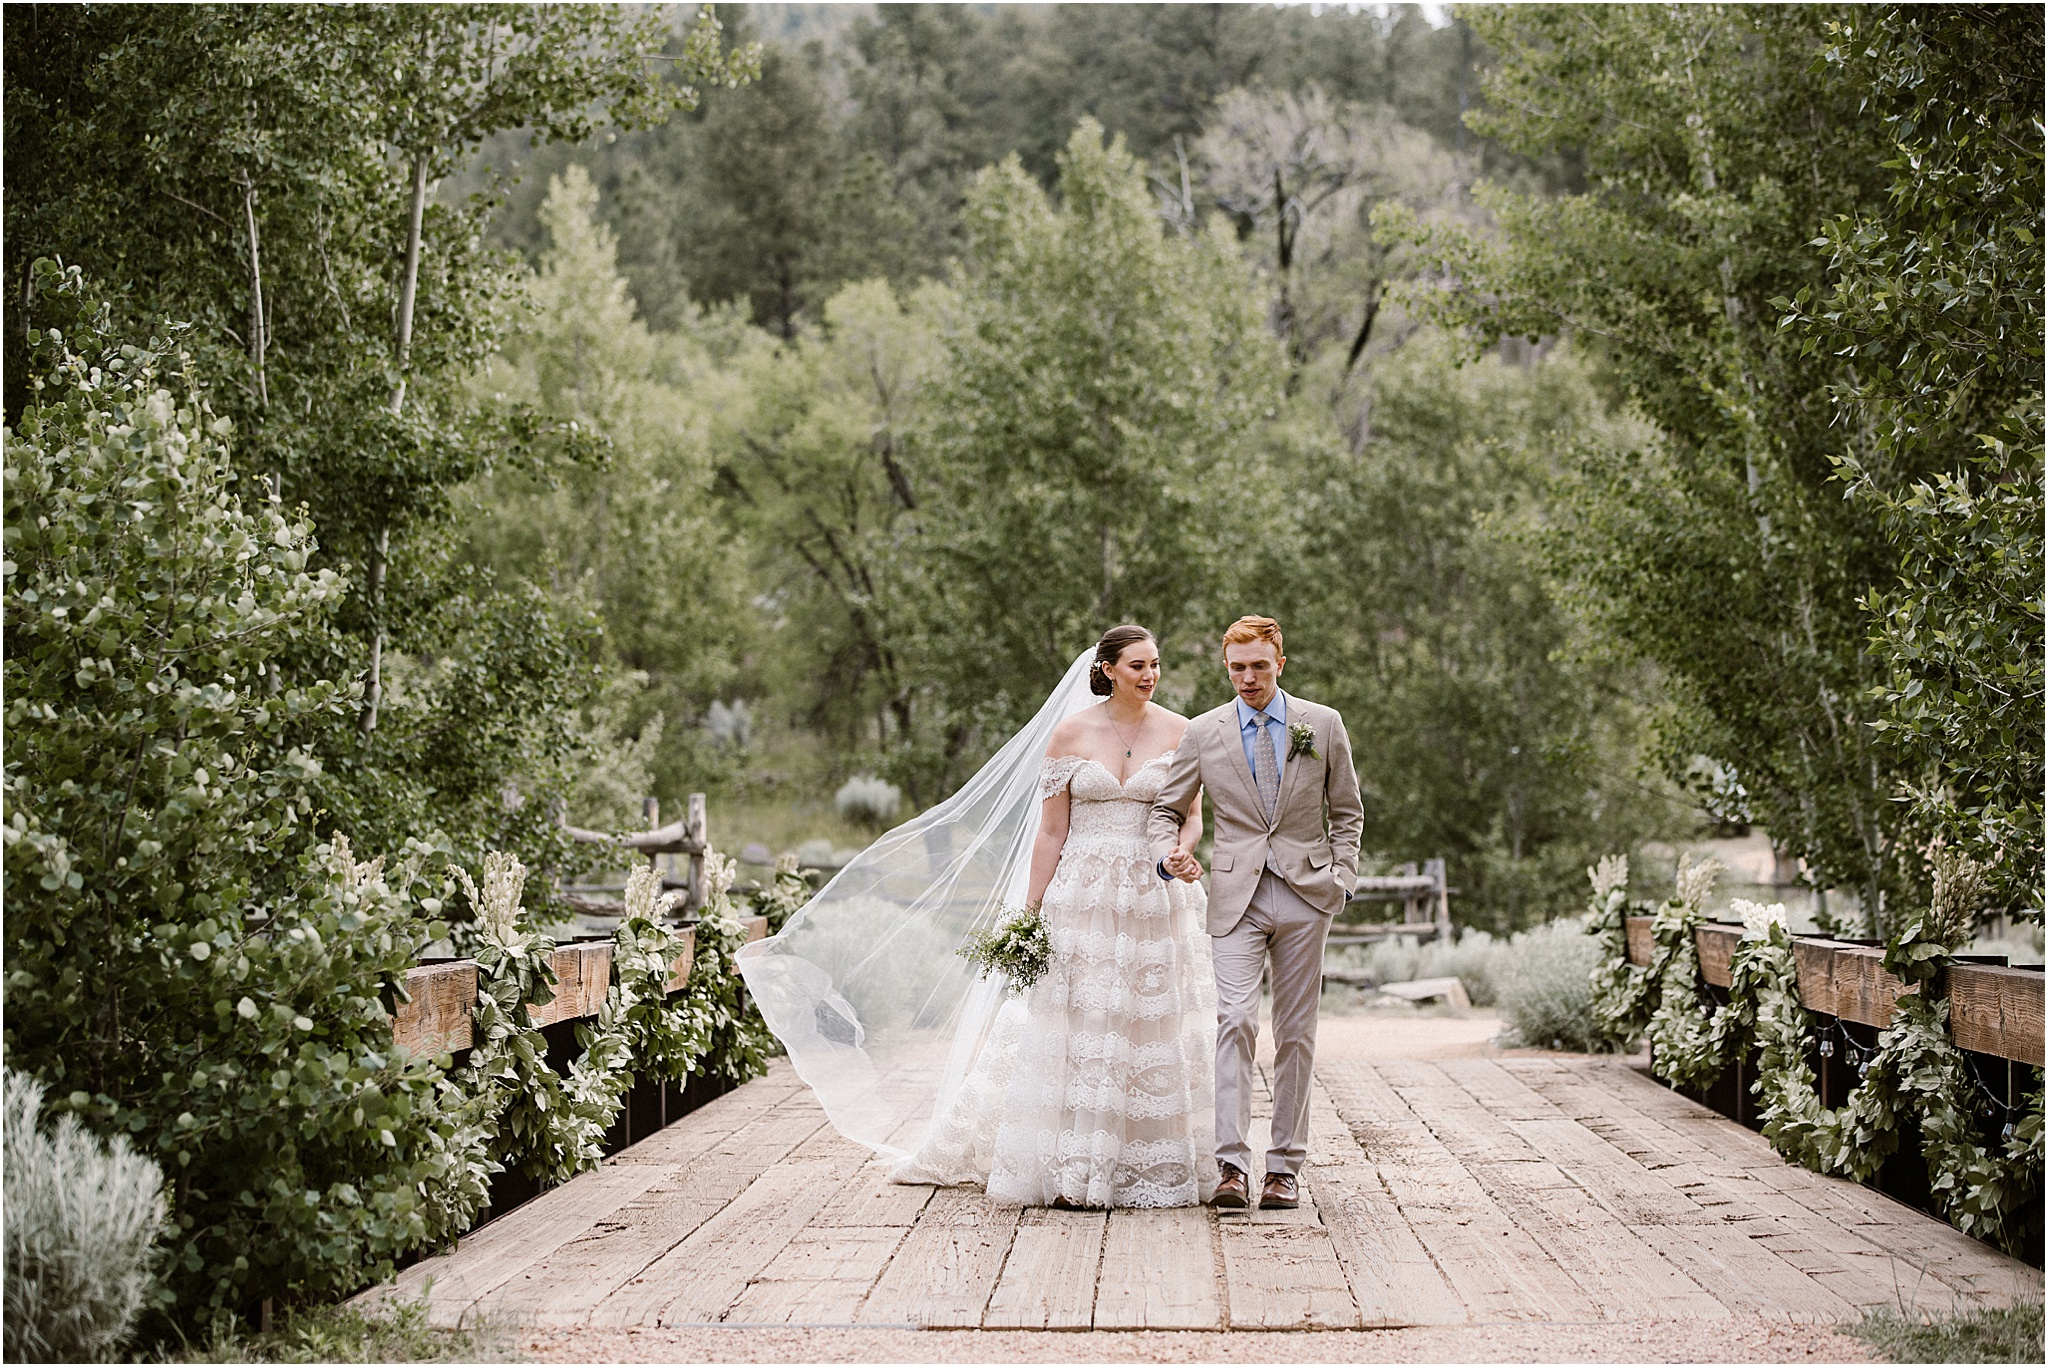 AMELIA_JASON_SANTA FE_ WEDDING_BLUE ROSE PHOTOGRAPHY93